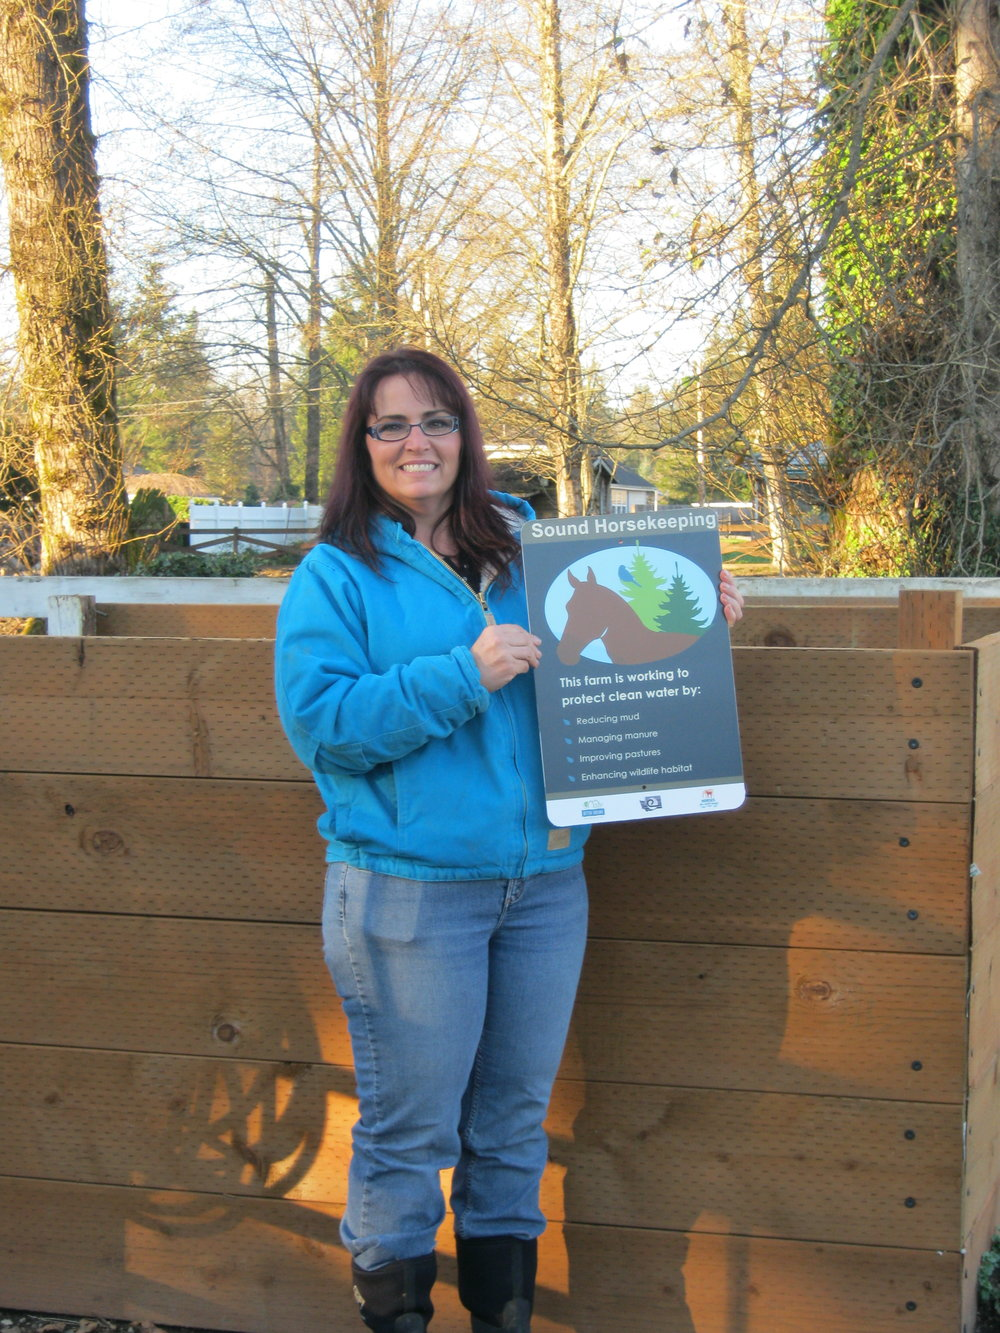 Karen Clark poses with her Sound Horsekeeping sign next to her compost bins